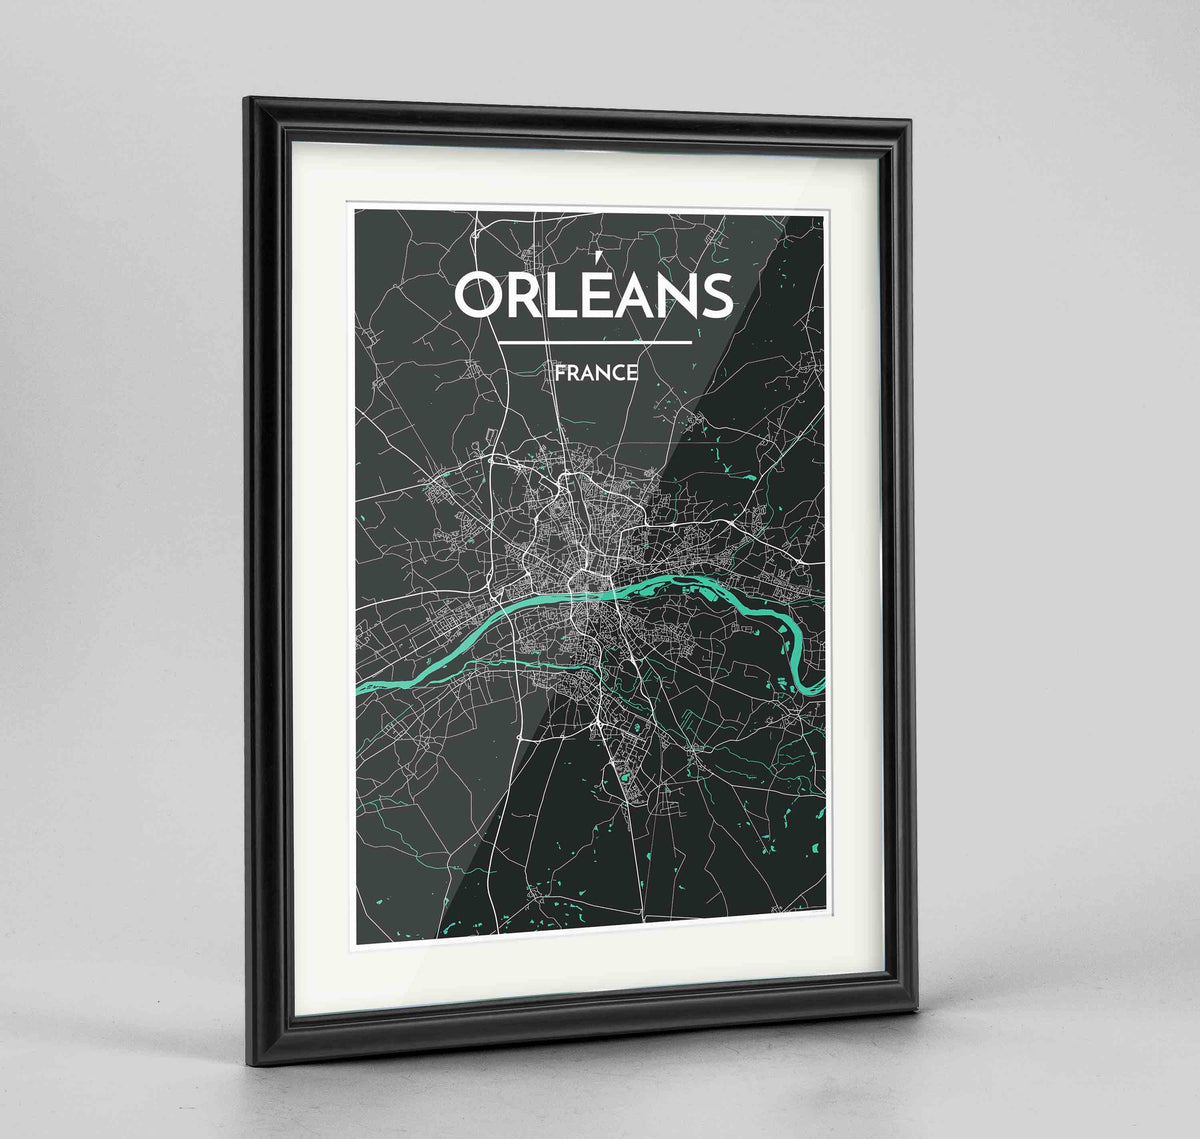 "Framed Orleans Map Art Print 24x36"" Traditional Black frame Point Two Design Group"